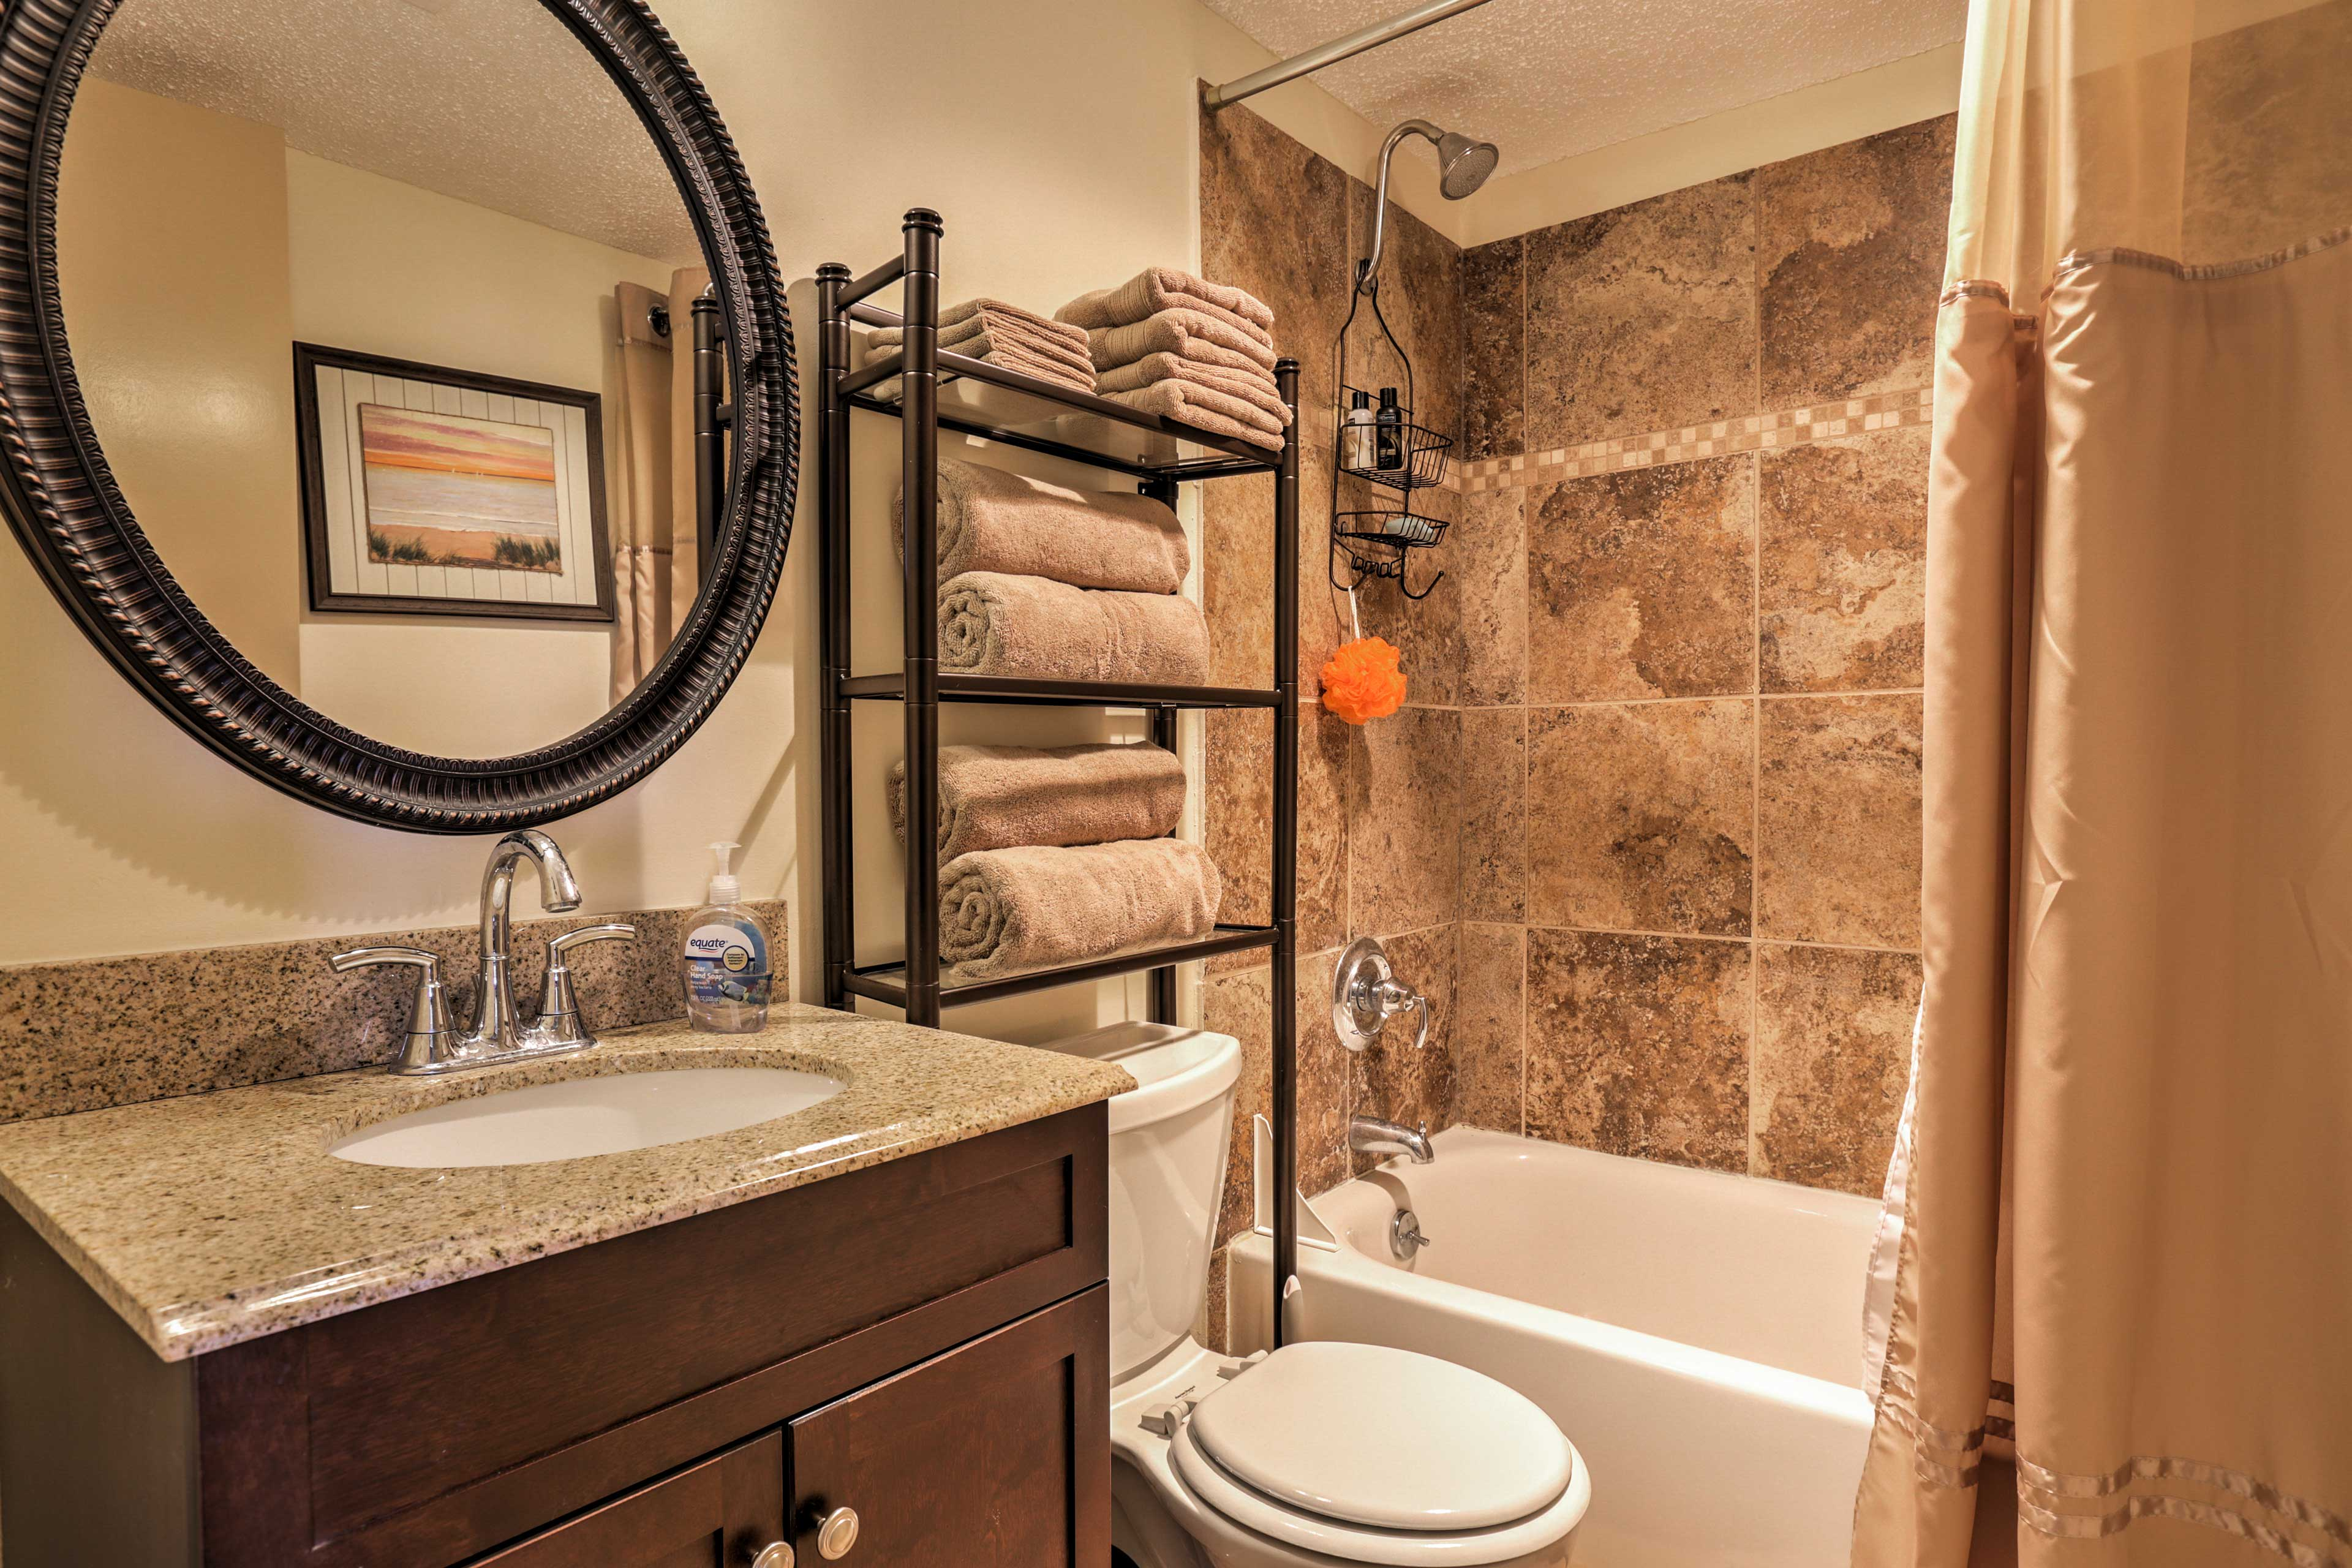 Rinse off in one of the 2 pristine bathrooms.